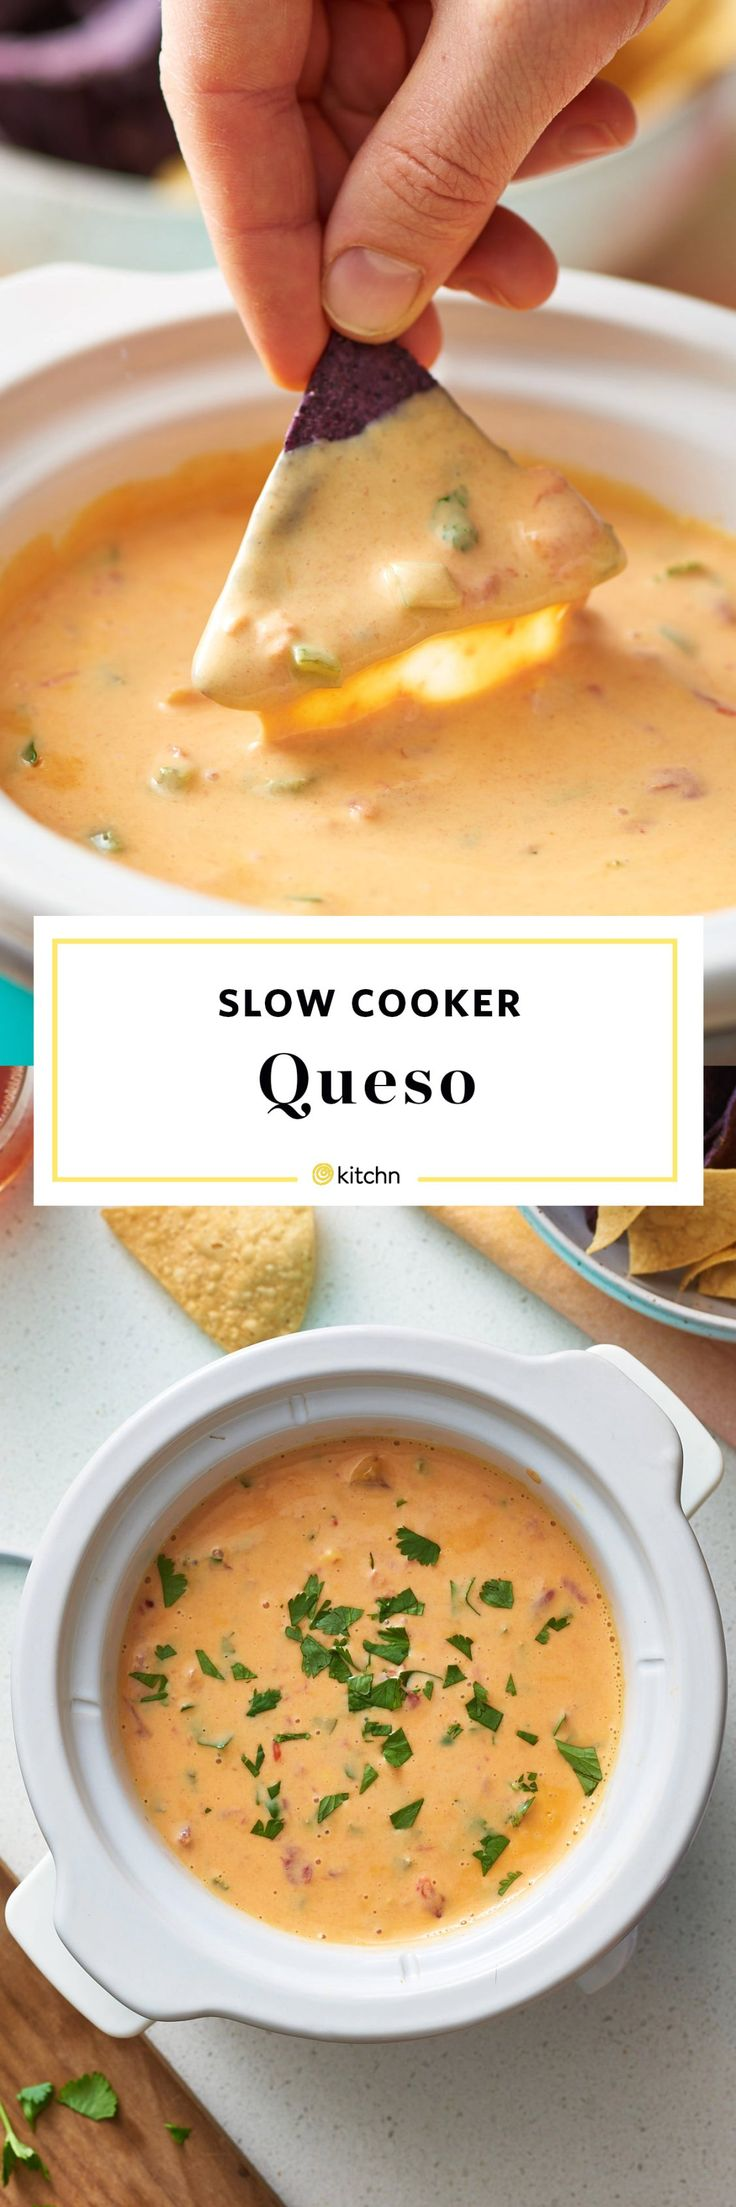 Slow Cooker Queso Dip Recipe. Looking for simple and easy recipes and ideas for food for a super football or super bowl party? This crockpot or crock pot cheese dip made with velveeta is an amazing addition to a spread of appetizers and hot or warm dips and crowd pleasers. Perfect for tailgates, house parties, potlucks, bbqs, and graduations. You'll need processed cheese like velveeta - white works too - hot sauce, and tortilla chips. Add ground beef or rotel if you like!